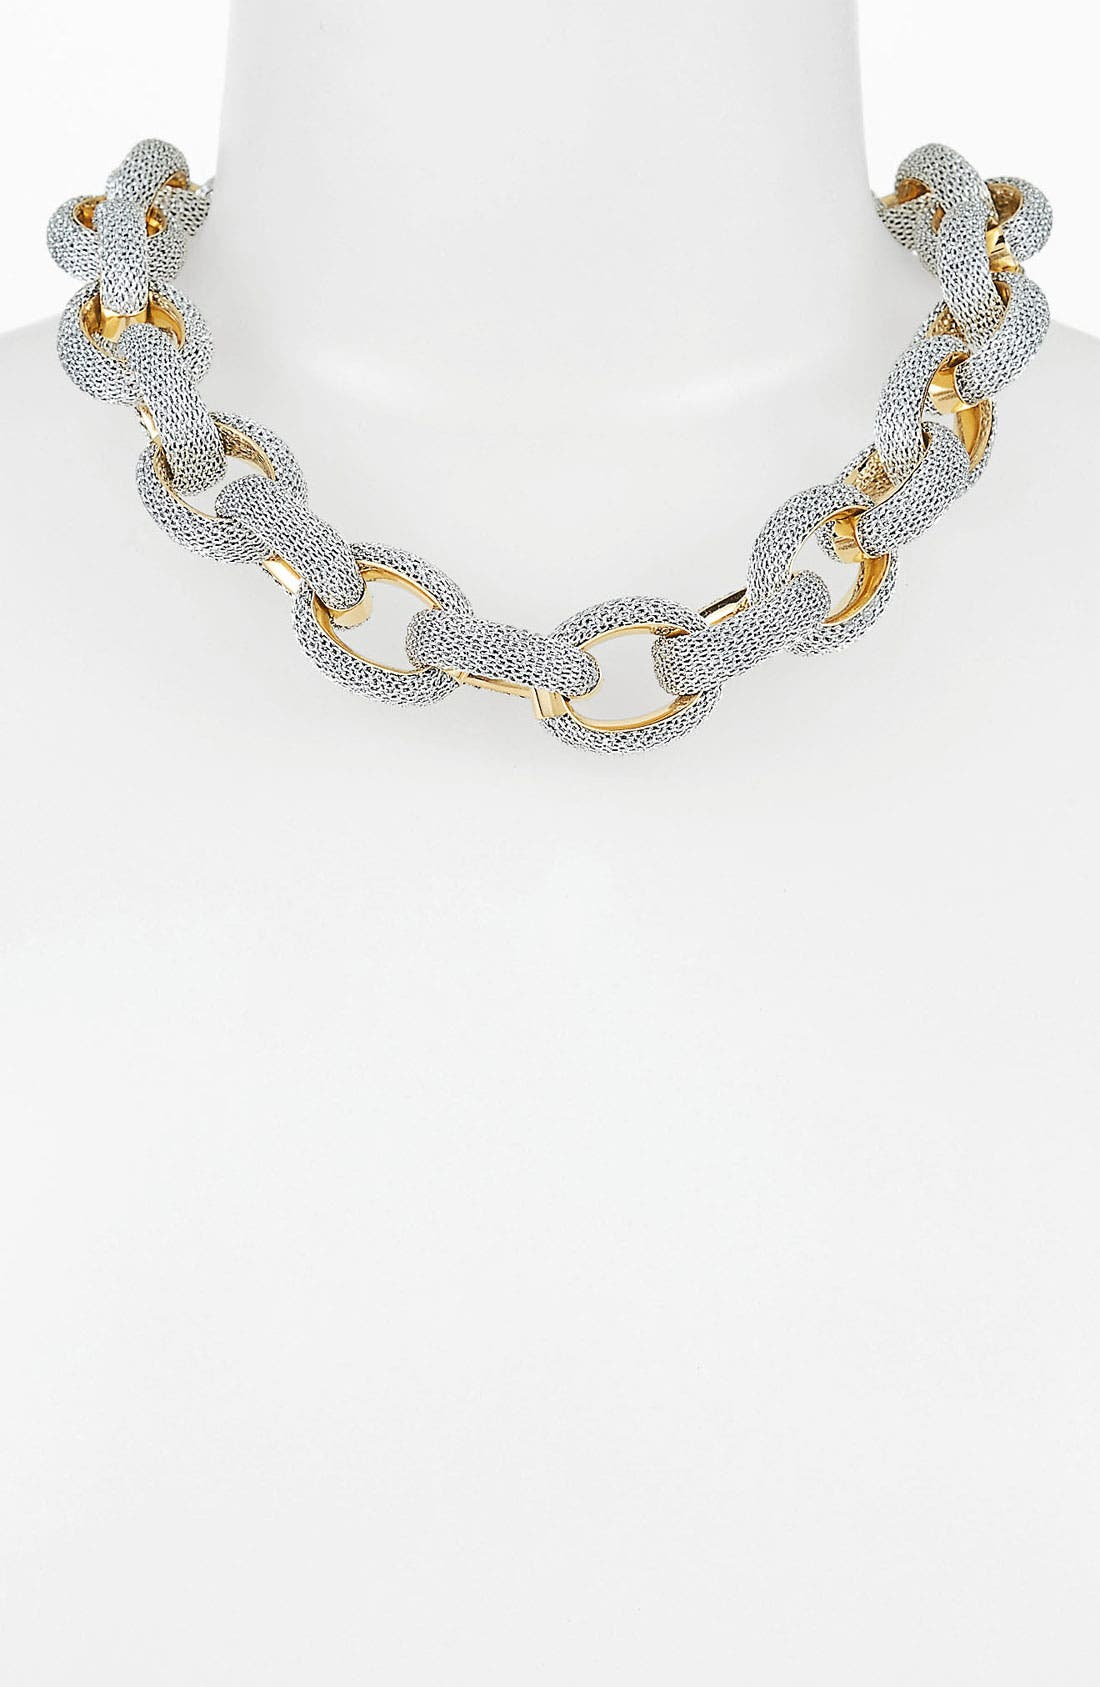 Alternate Image 1 Selected - Adami & Martucci 'Mesh' Link Collar Necklace (Nordstrom Exclusive)